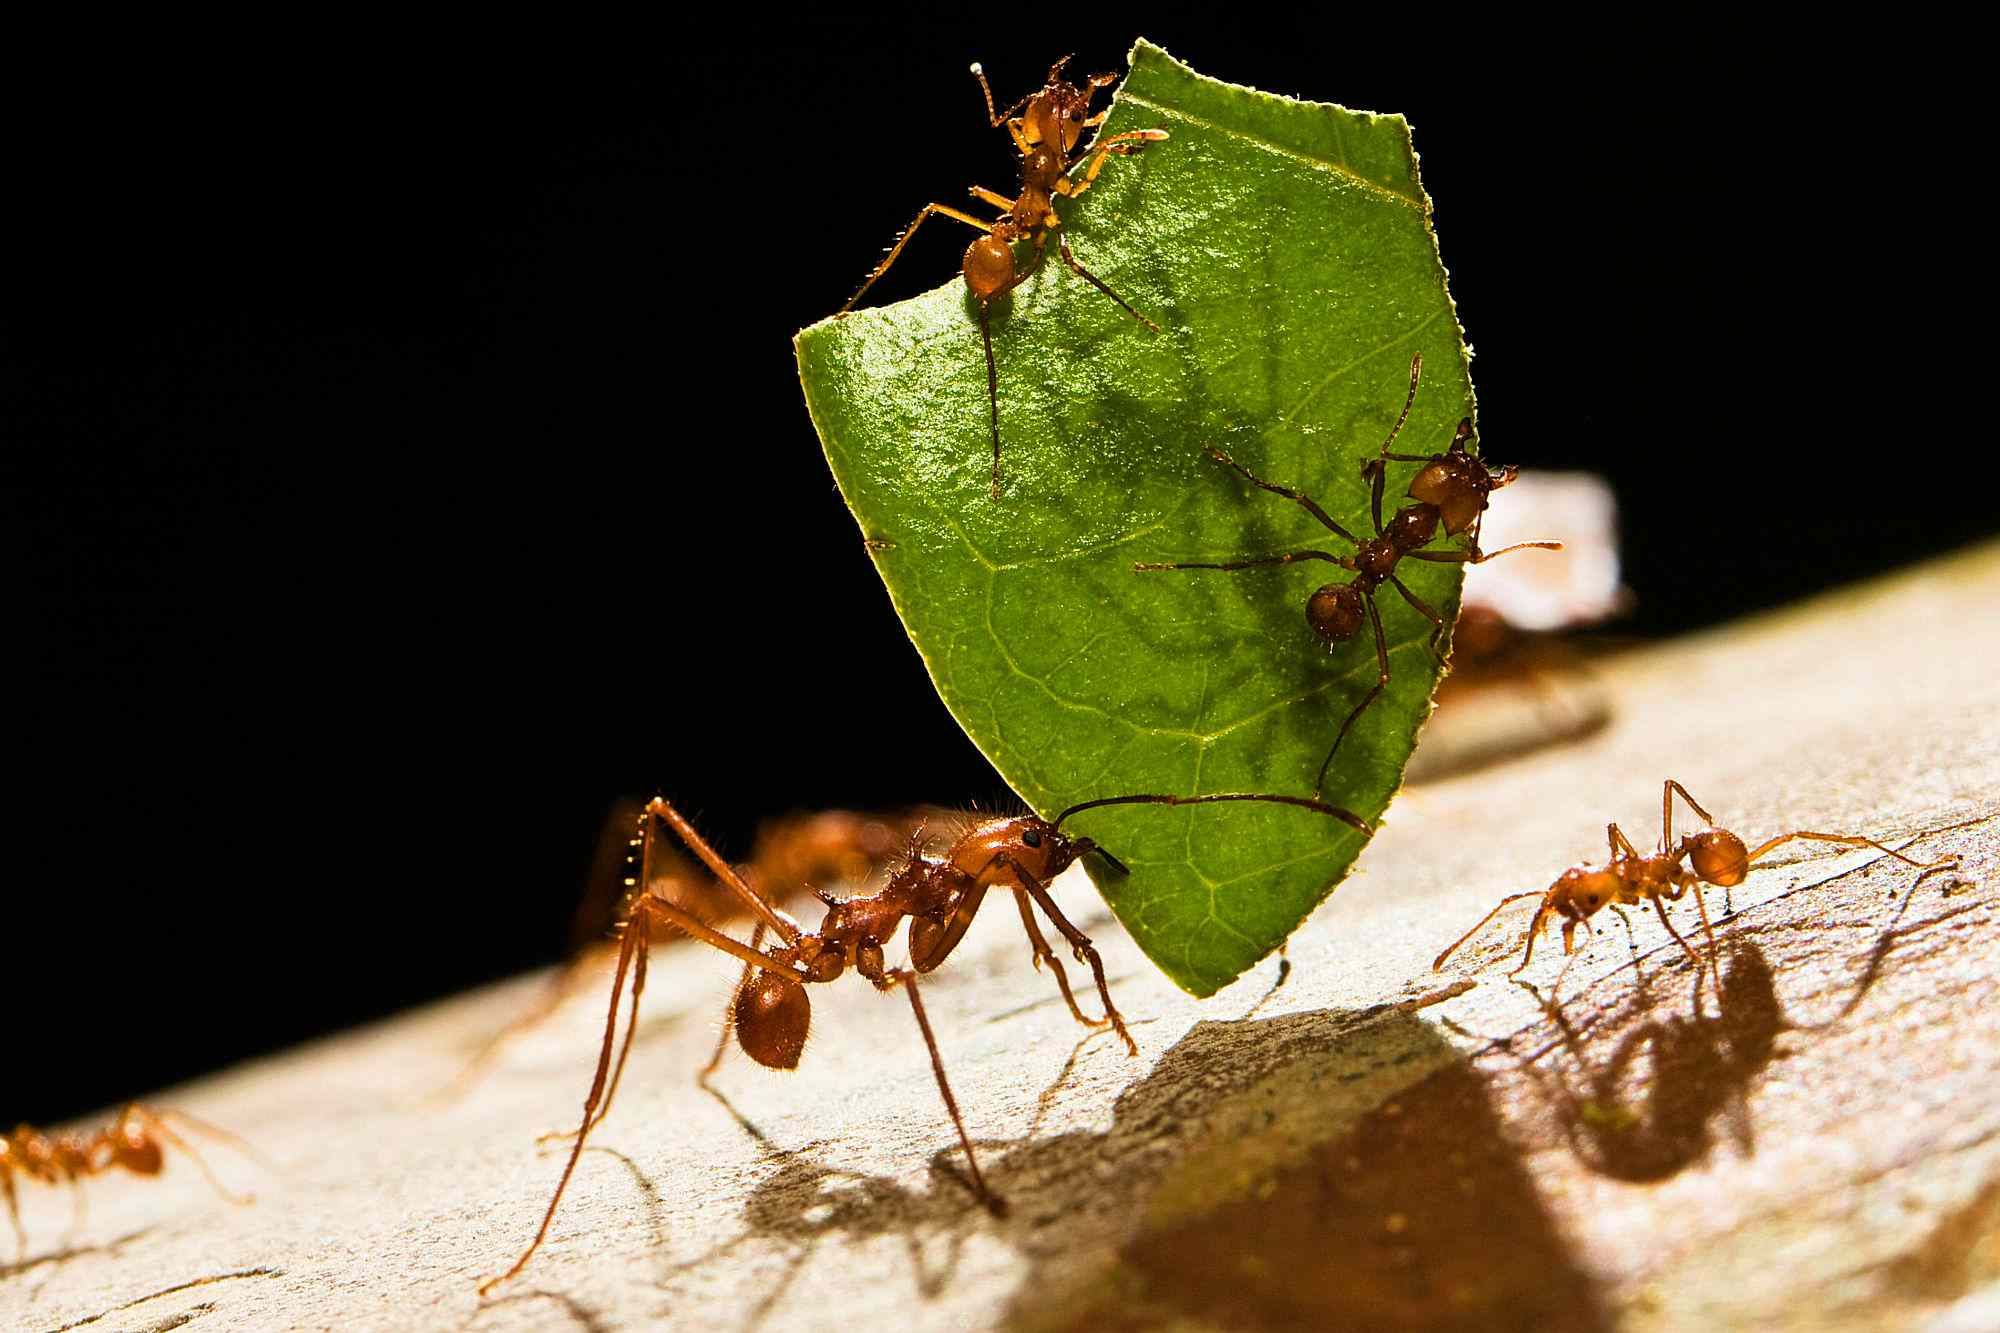 Atta Ants carrying a leaf